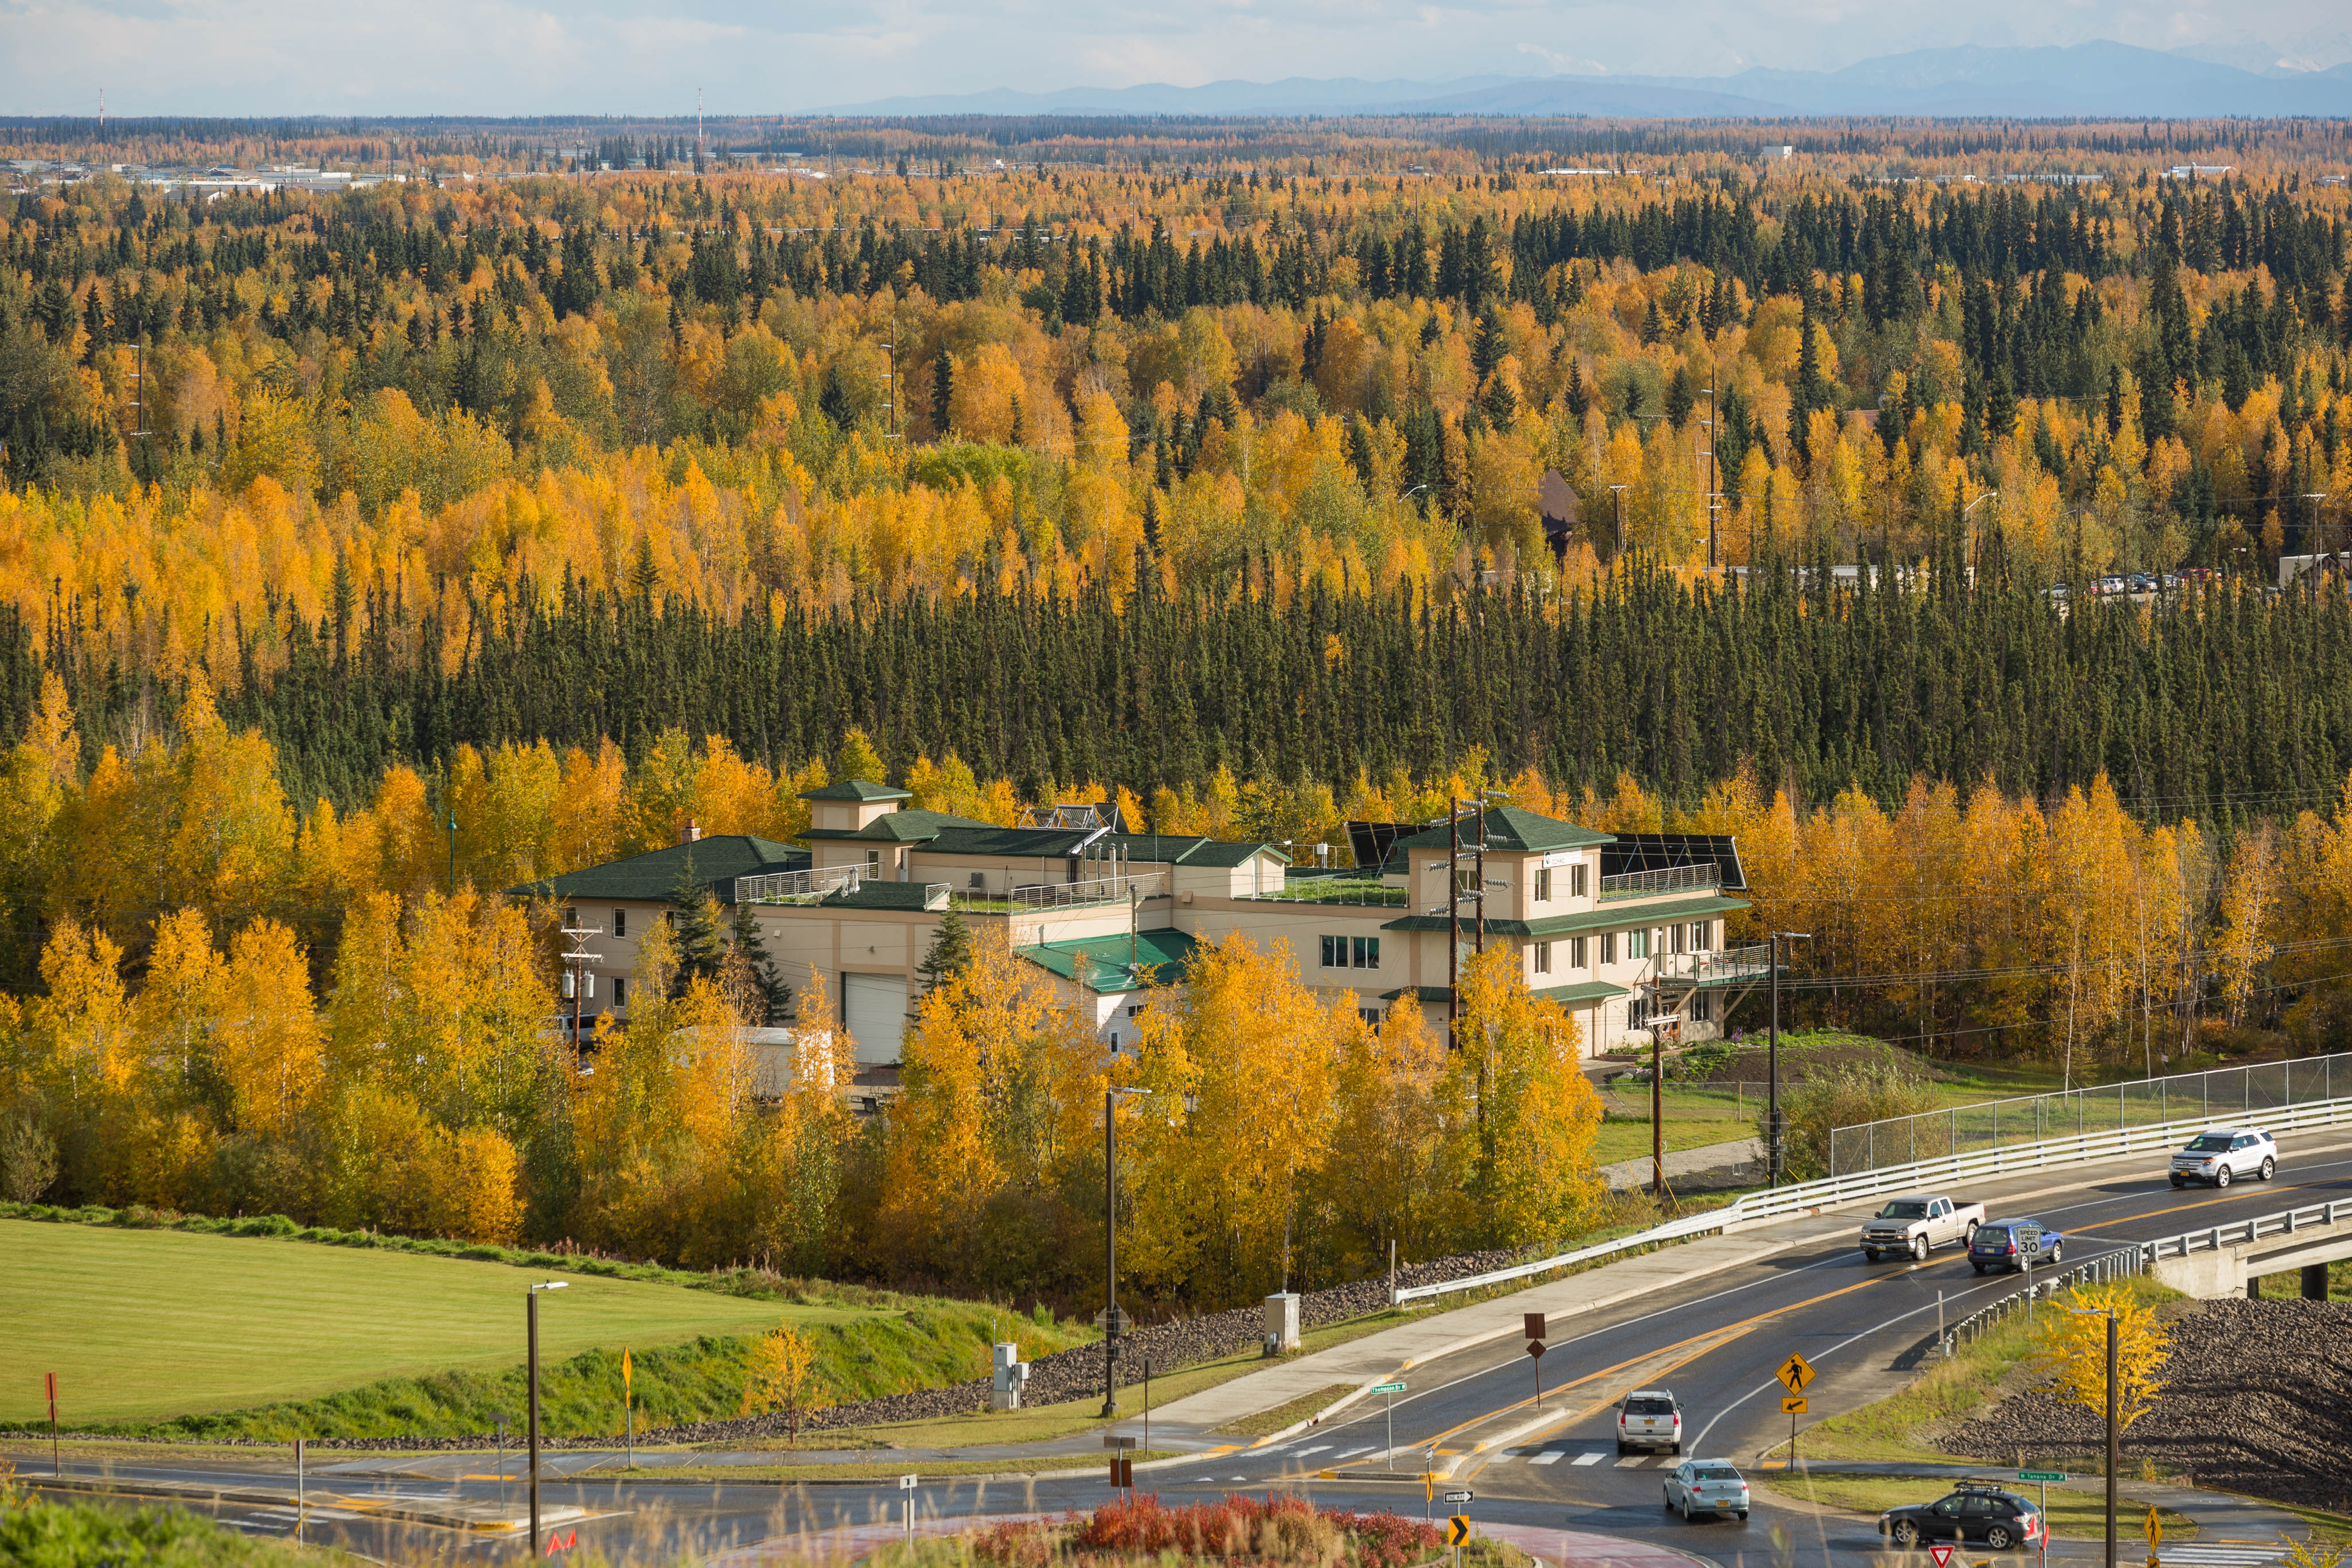 The Cold Climate Housing Research Center in Fairbanks on September 9, 2015. (Loren Holmes / Alaska Dispatch News)